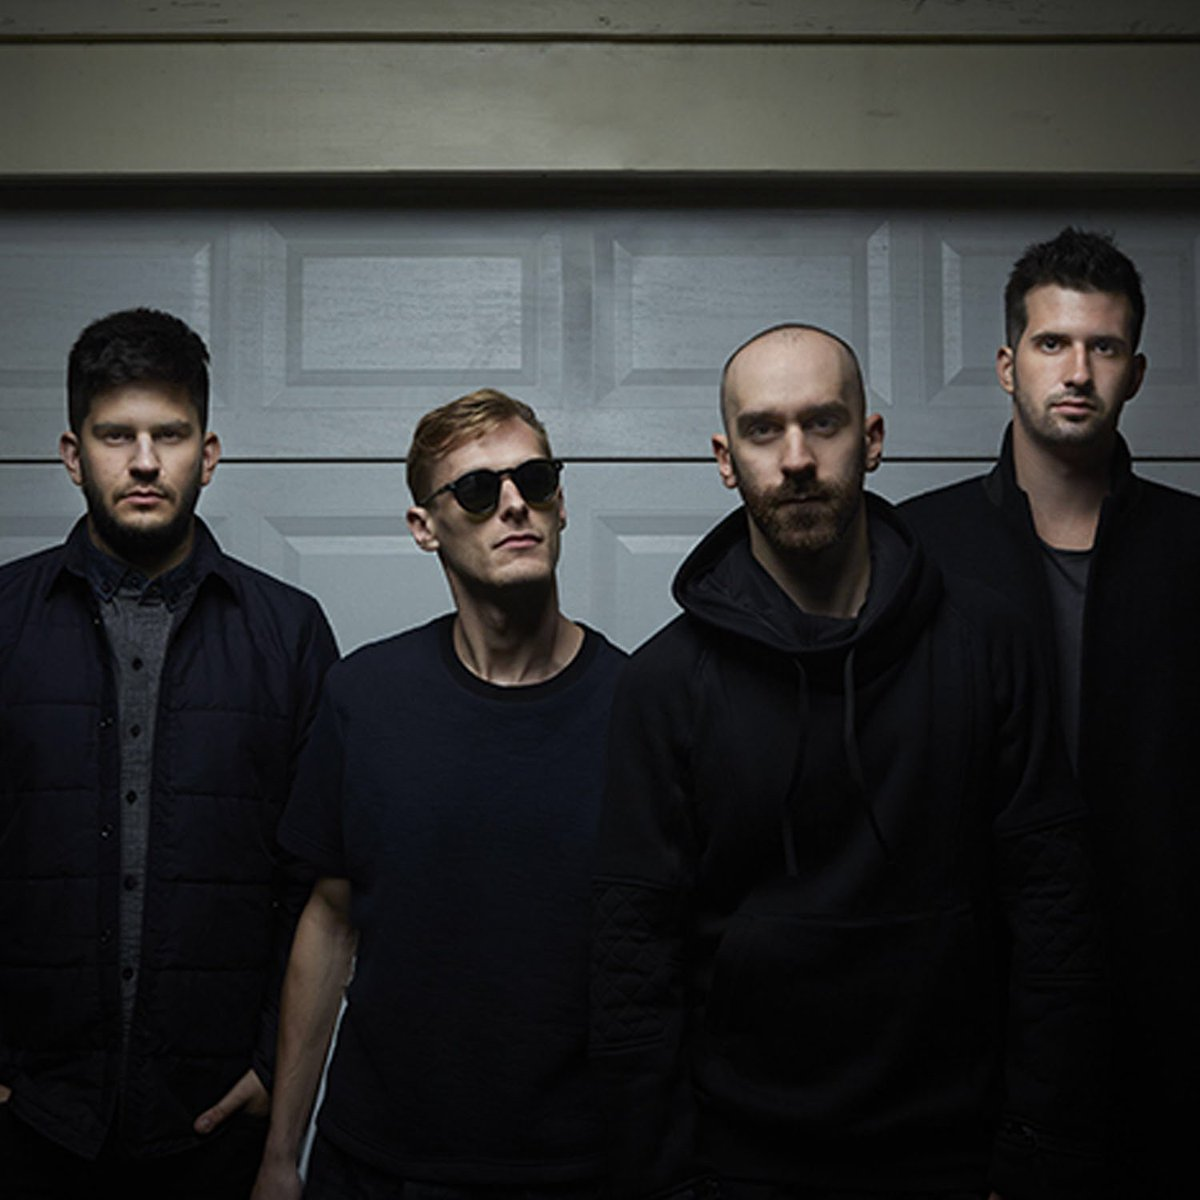 Retweet for a chance to win a guitar signed by @XAmbassadors #covertconcert #Stampede2016 https://t.co/qCtVqHknrk